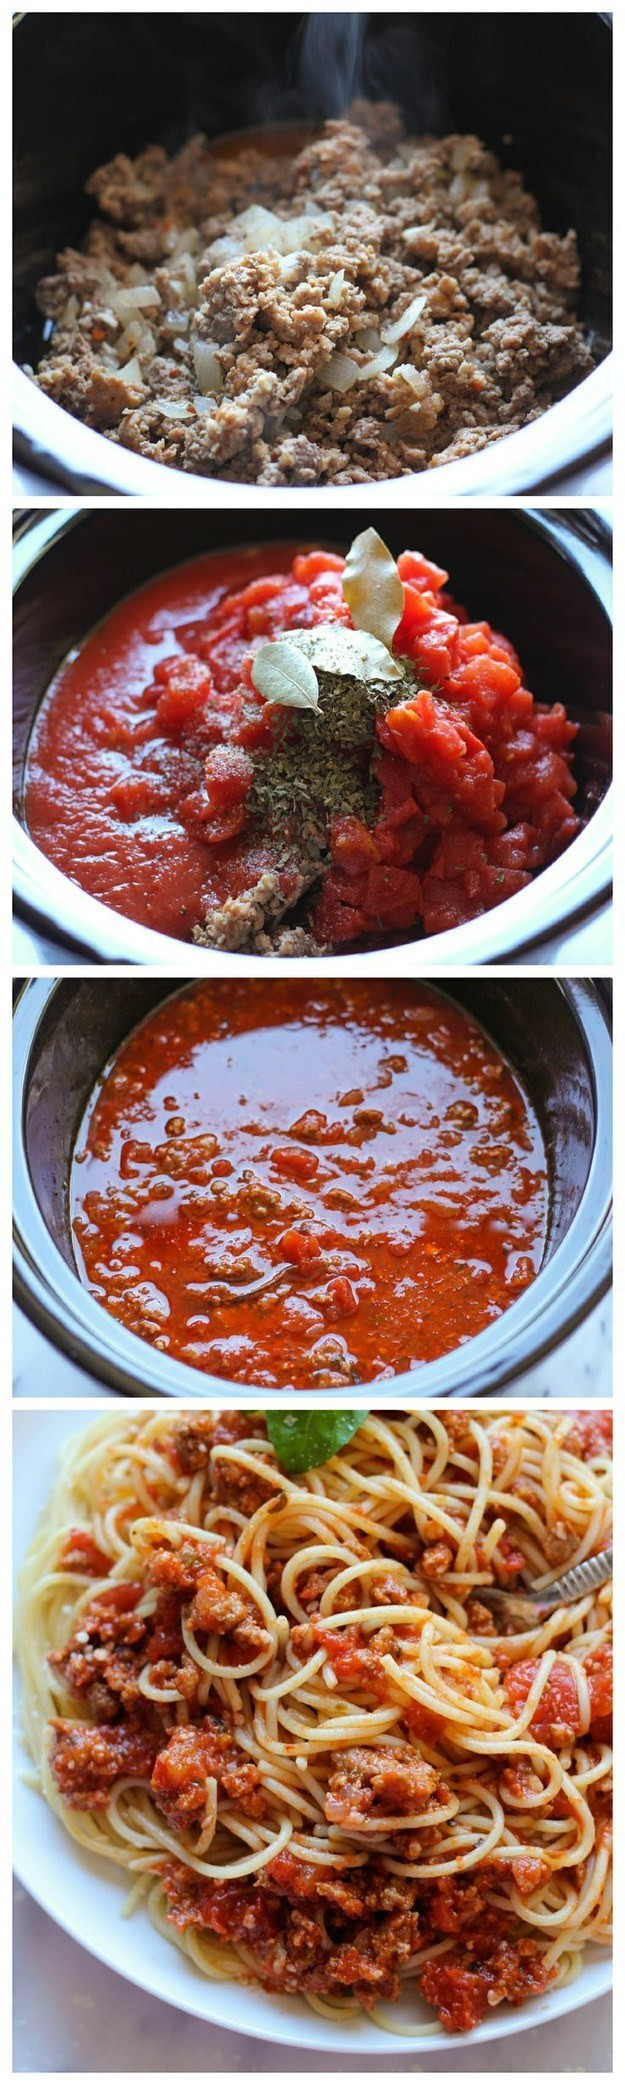 Slow Cooker Spaghetti Sauce  15 Best Recipes to Get Red Sauce Pretty Designs